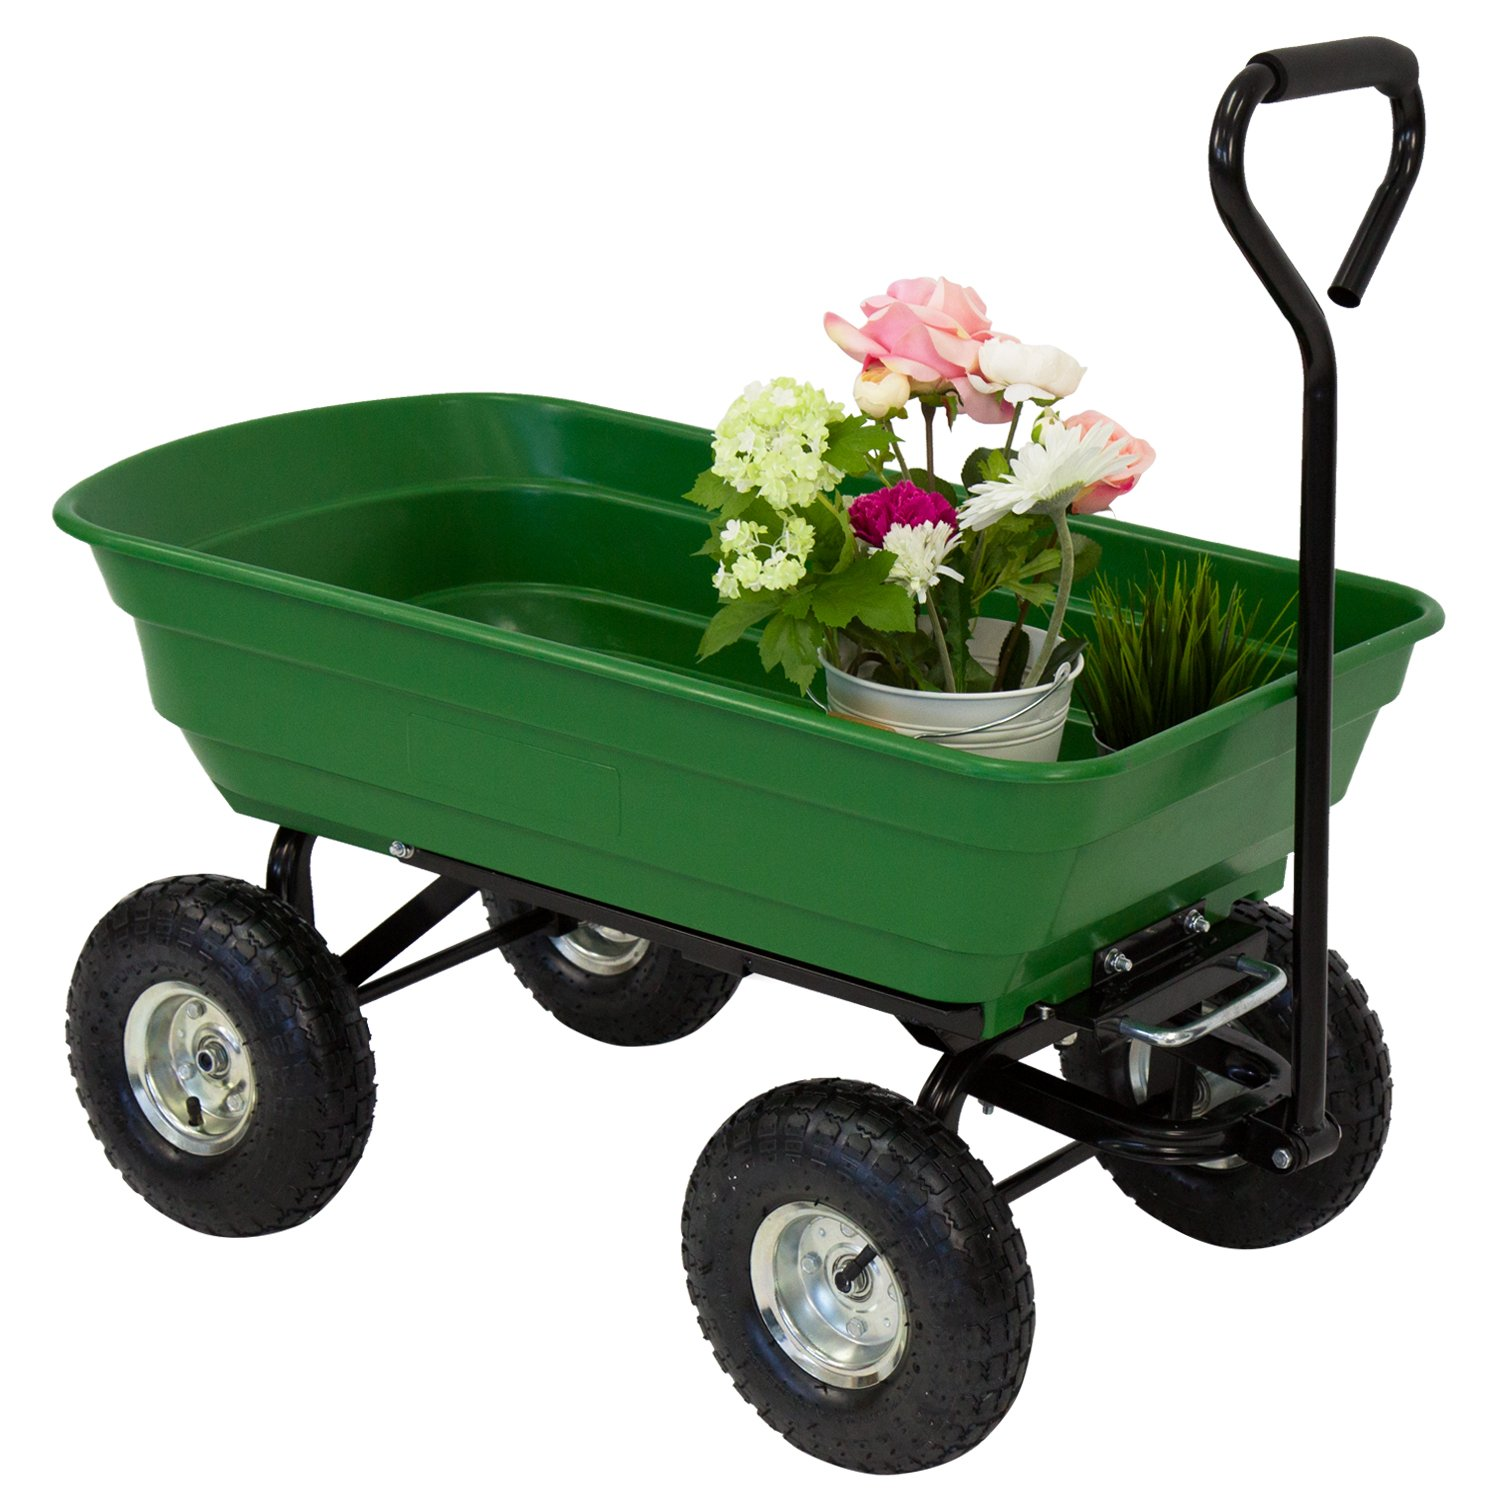 Kinbor 600LB Garden Tools Dump Cart Dumper Wagon Carrier Wheel Barrow Air Tires Heavy Duty, Green